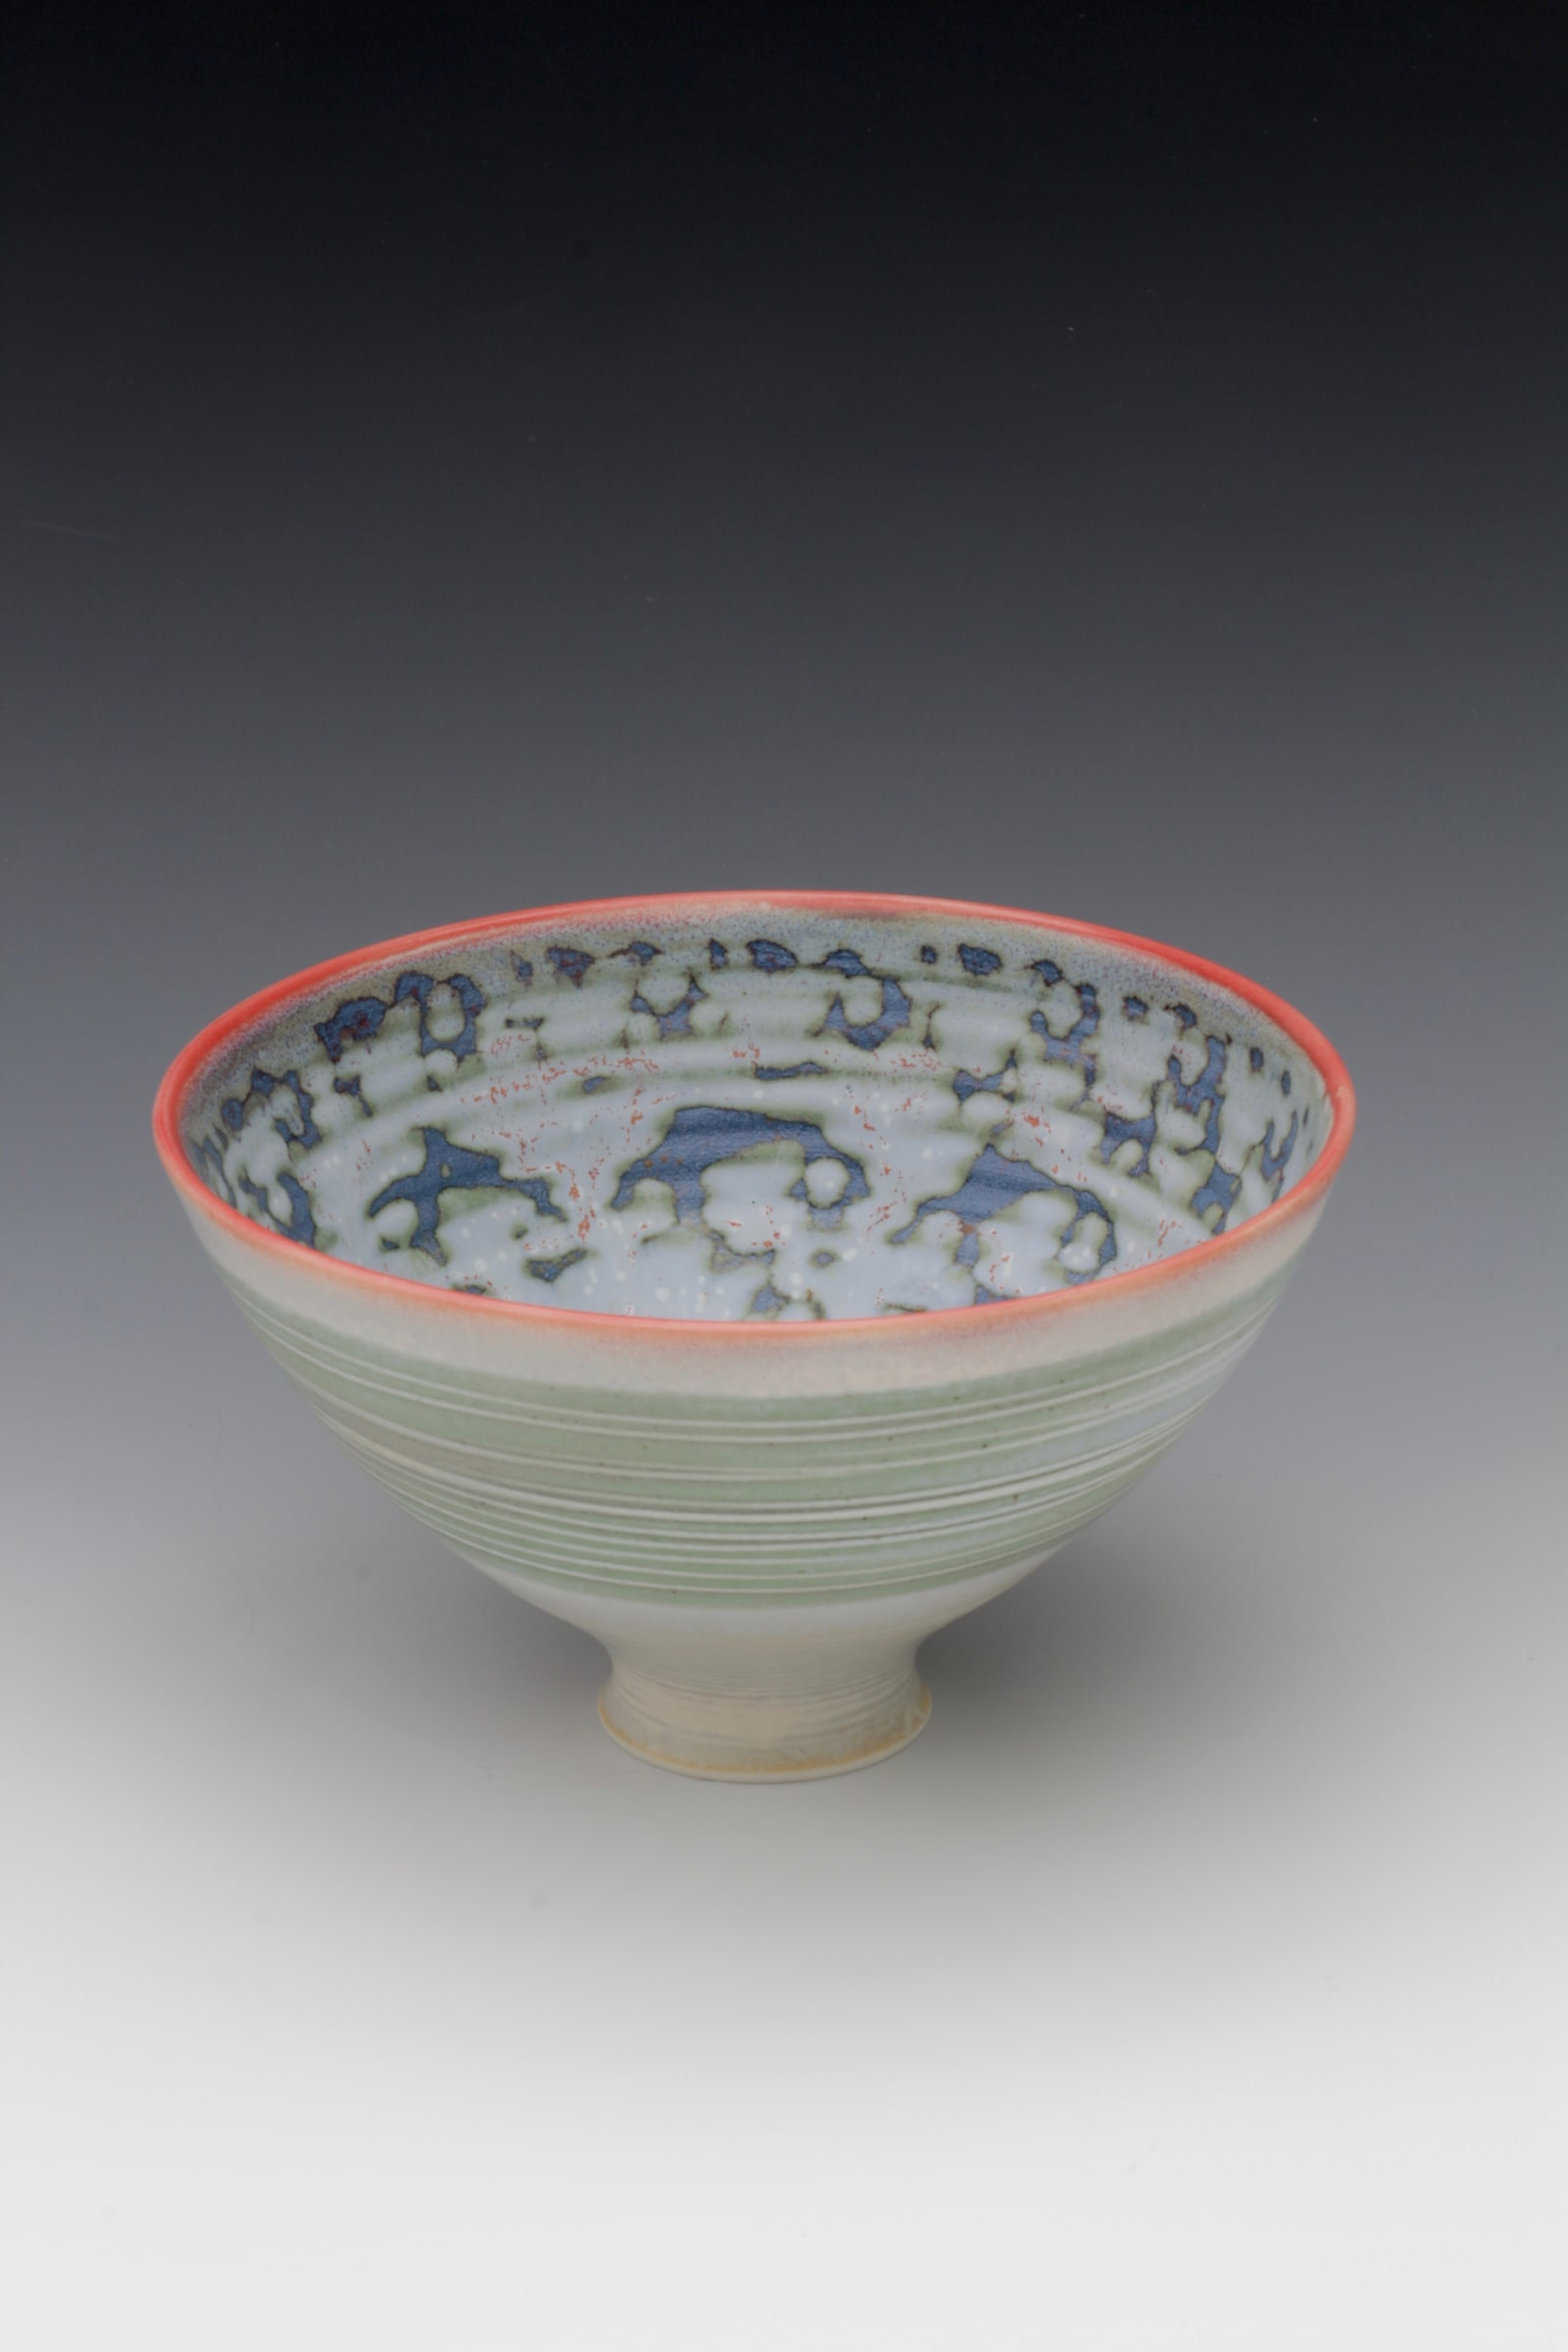 """<span class=""""link fancybox-details-link""""><a href=""""/artists/61-geoffrey-swindell/works/6315-geoffrey-swindell-bowl-2019/"""">View Detail Page</a></span><div class=""""artist""""><strong>Geoffrey Swindell</strong></div> b. 1945 <div class=""""title""""><em>Bowl</em>, 2019</div> <div class=""""signed_and_dated"""">impressed artist's seal to base</div> <div class=""""medium"""">porcelain</div><div class=""""price"""">£140.00</div><div class=""""copyright_line"""">Own Art £14 x 10 months 0% APR</div>"""